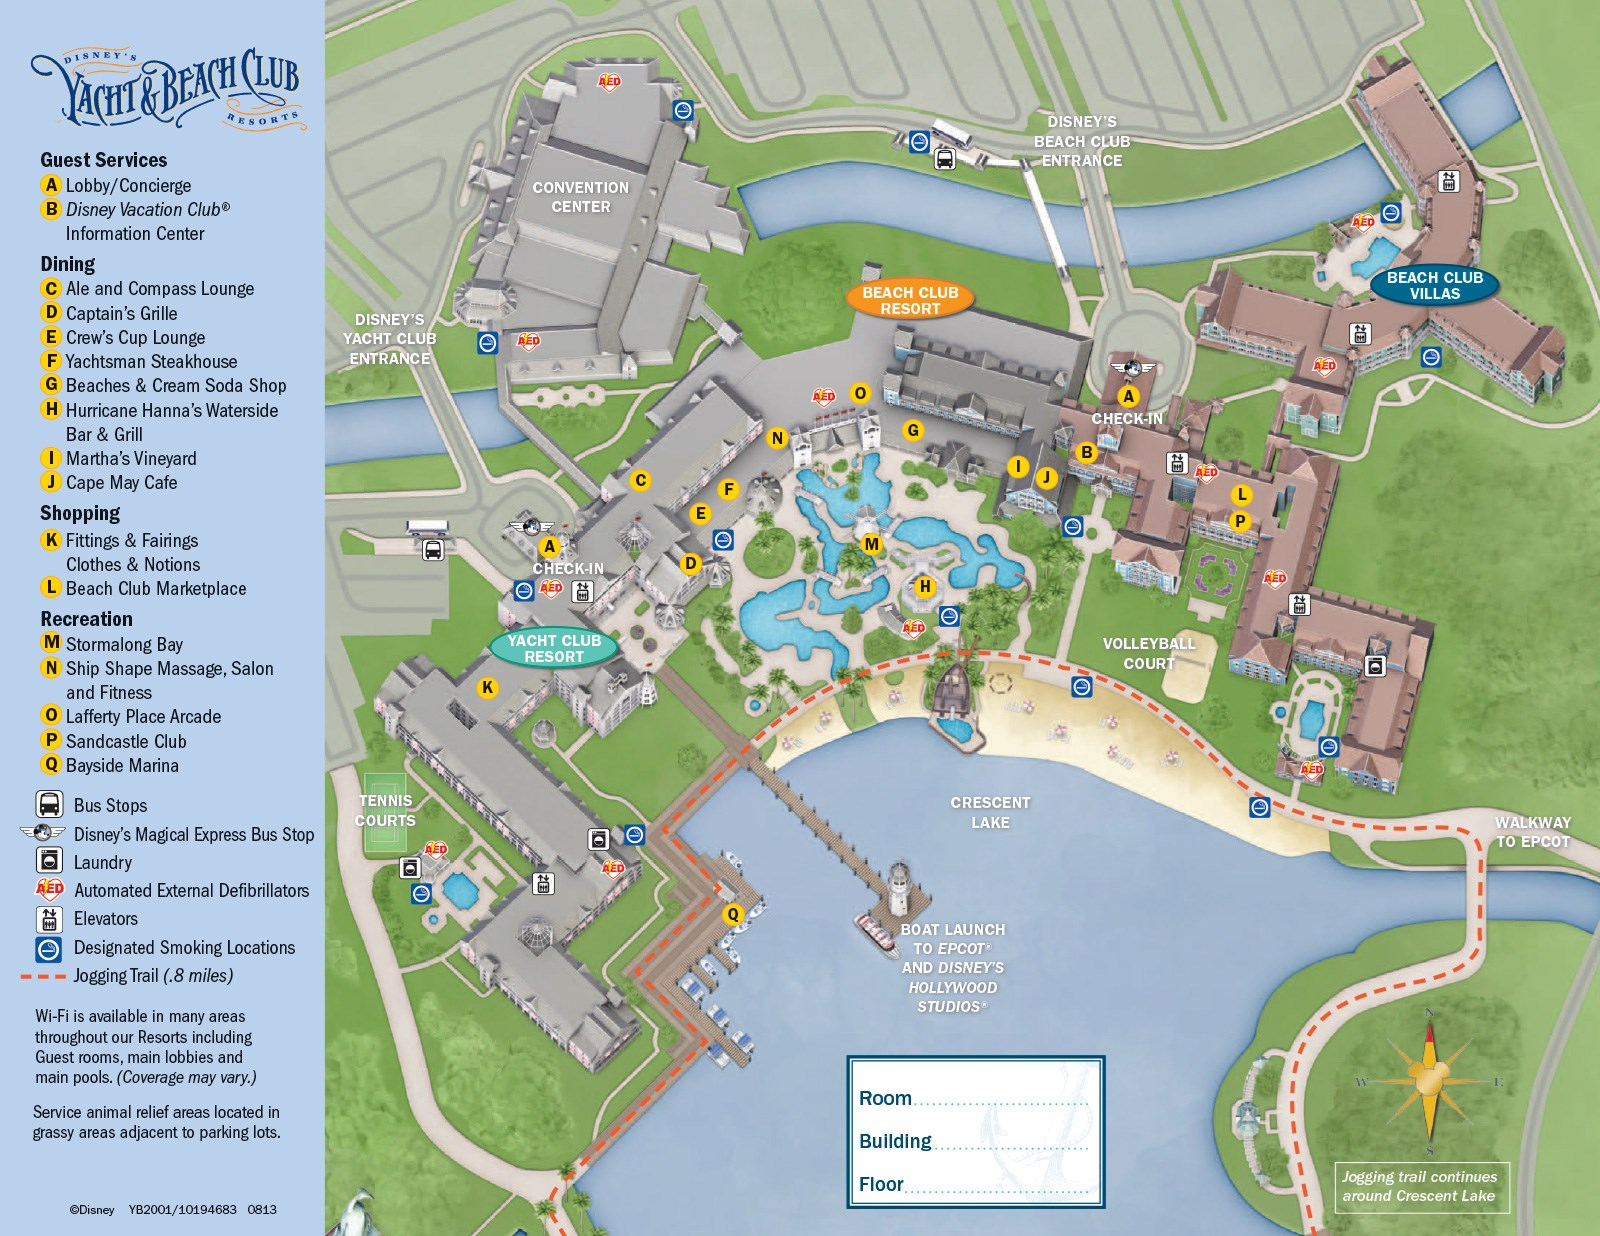 2013 Yacht Club guide map